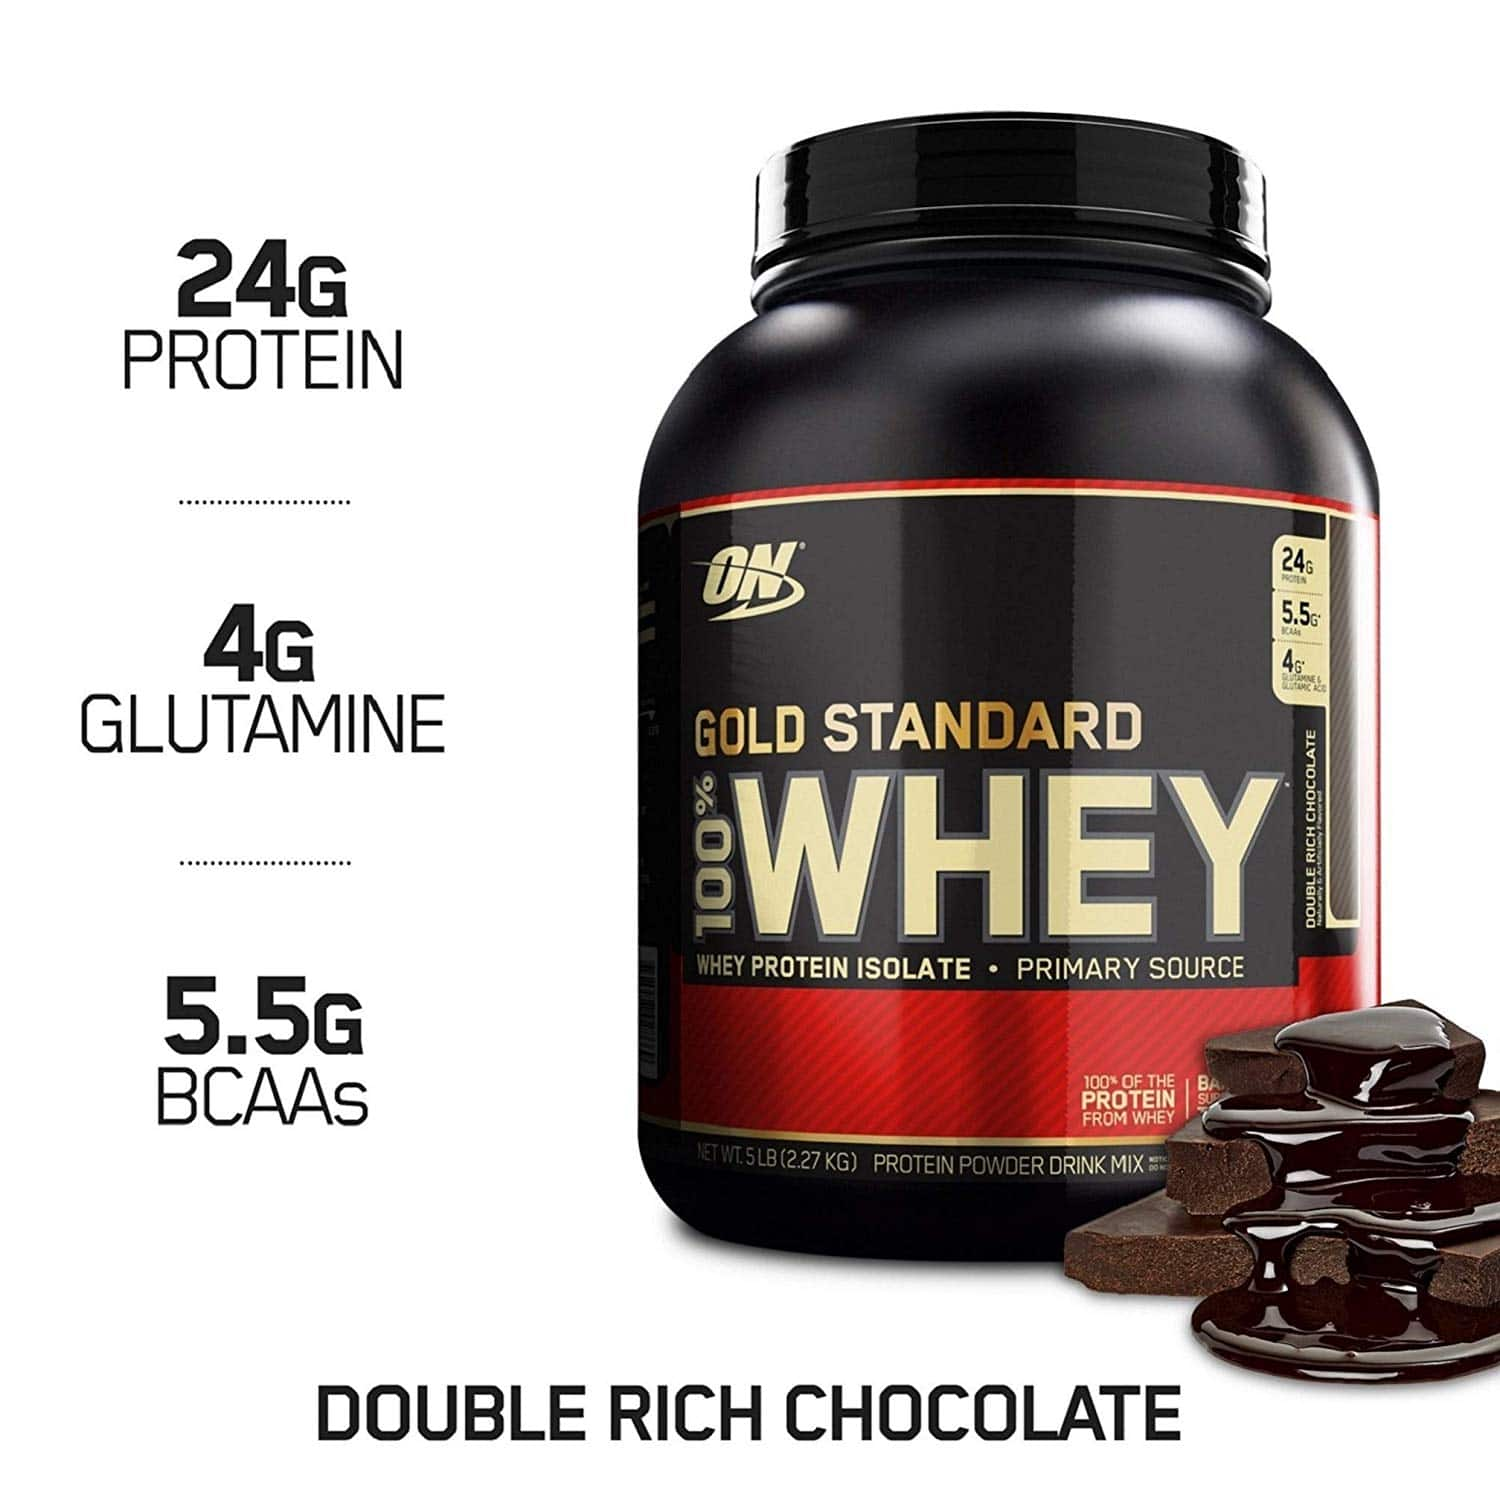 3 x Optimum Nutrition Gold Standard 100% Whey Protein Powder, Double Rich Chocolate, 5 Pound [Double Rich Chocolate] $104.7 before taxes. $104.67